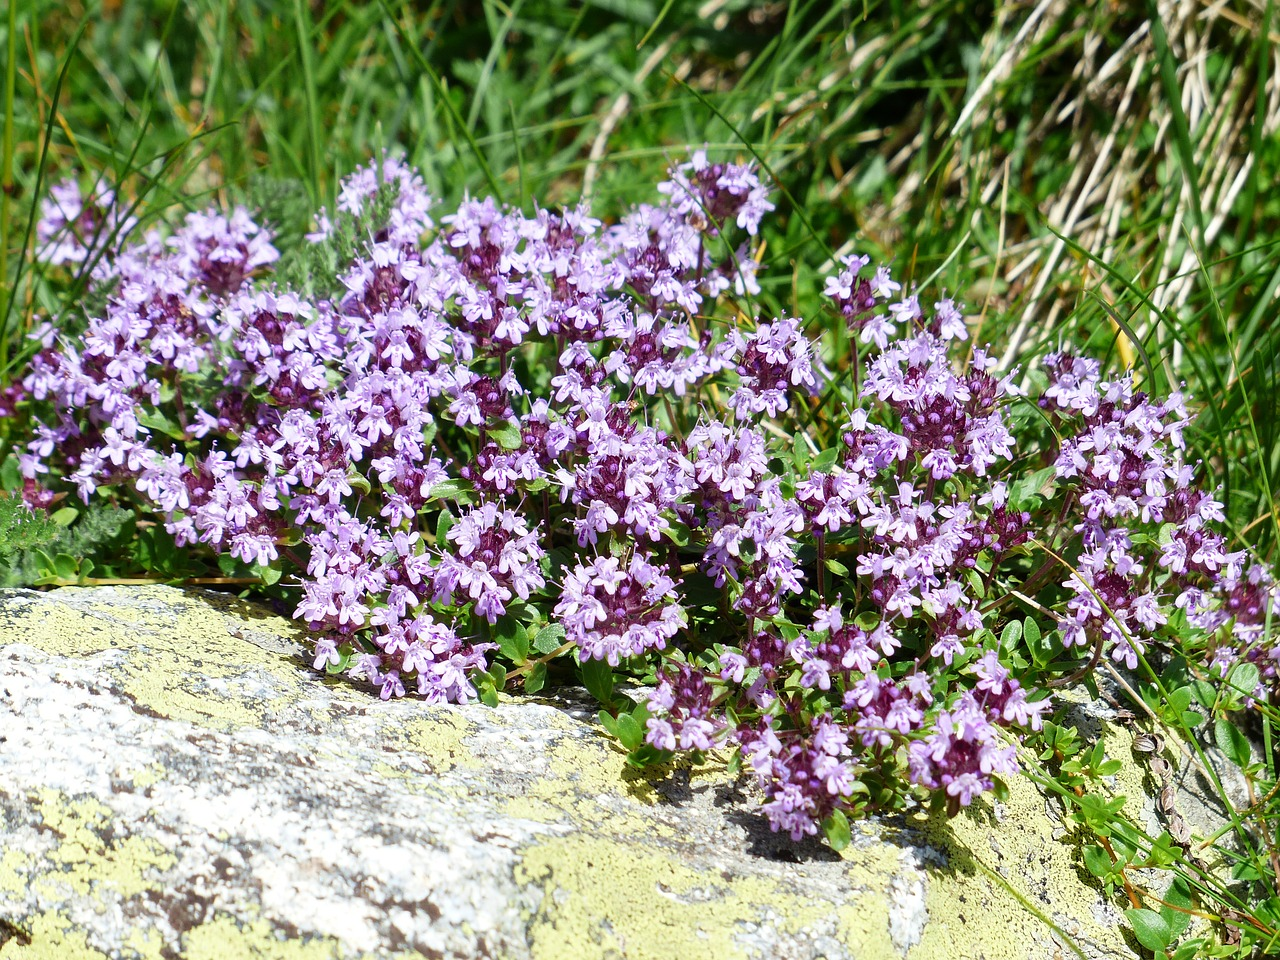 Purple thyme blossoms